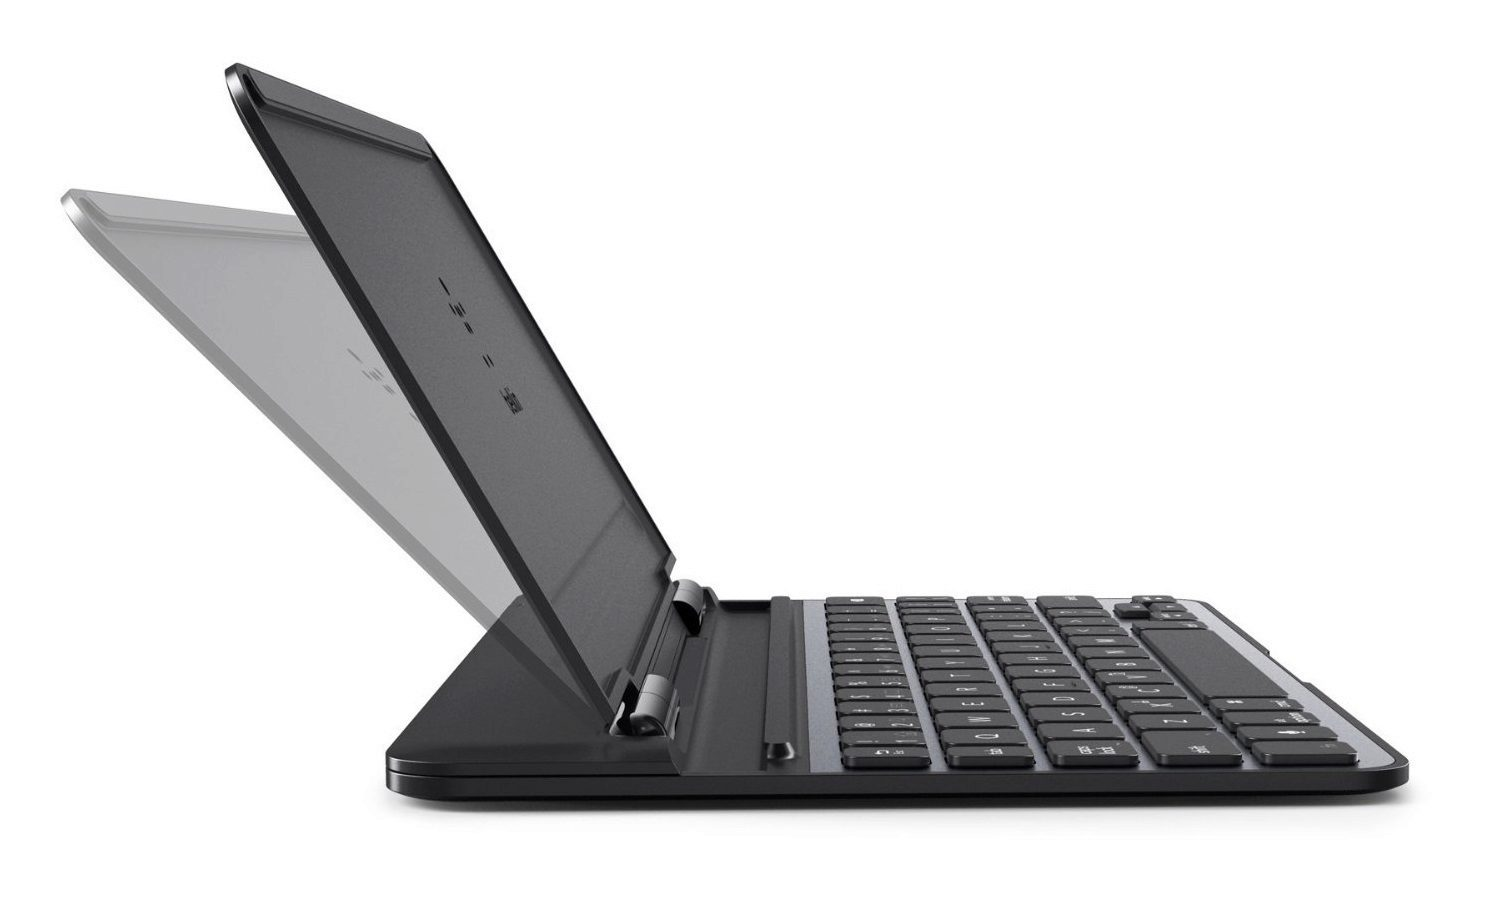 belkin Mobile Wireless Keyboard úhly náklonu